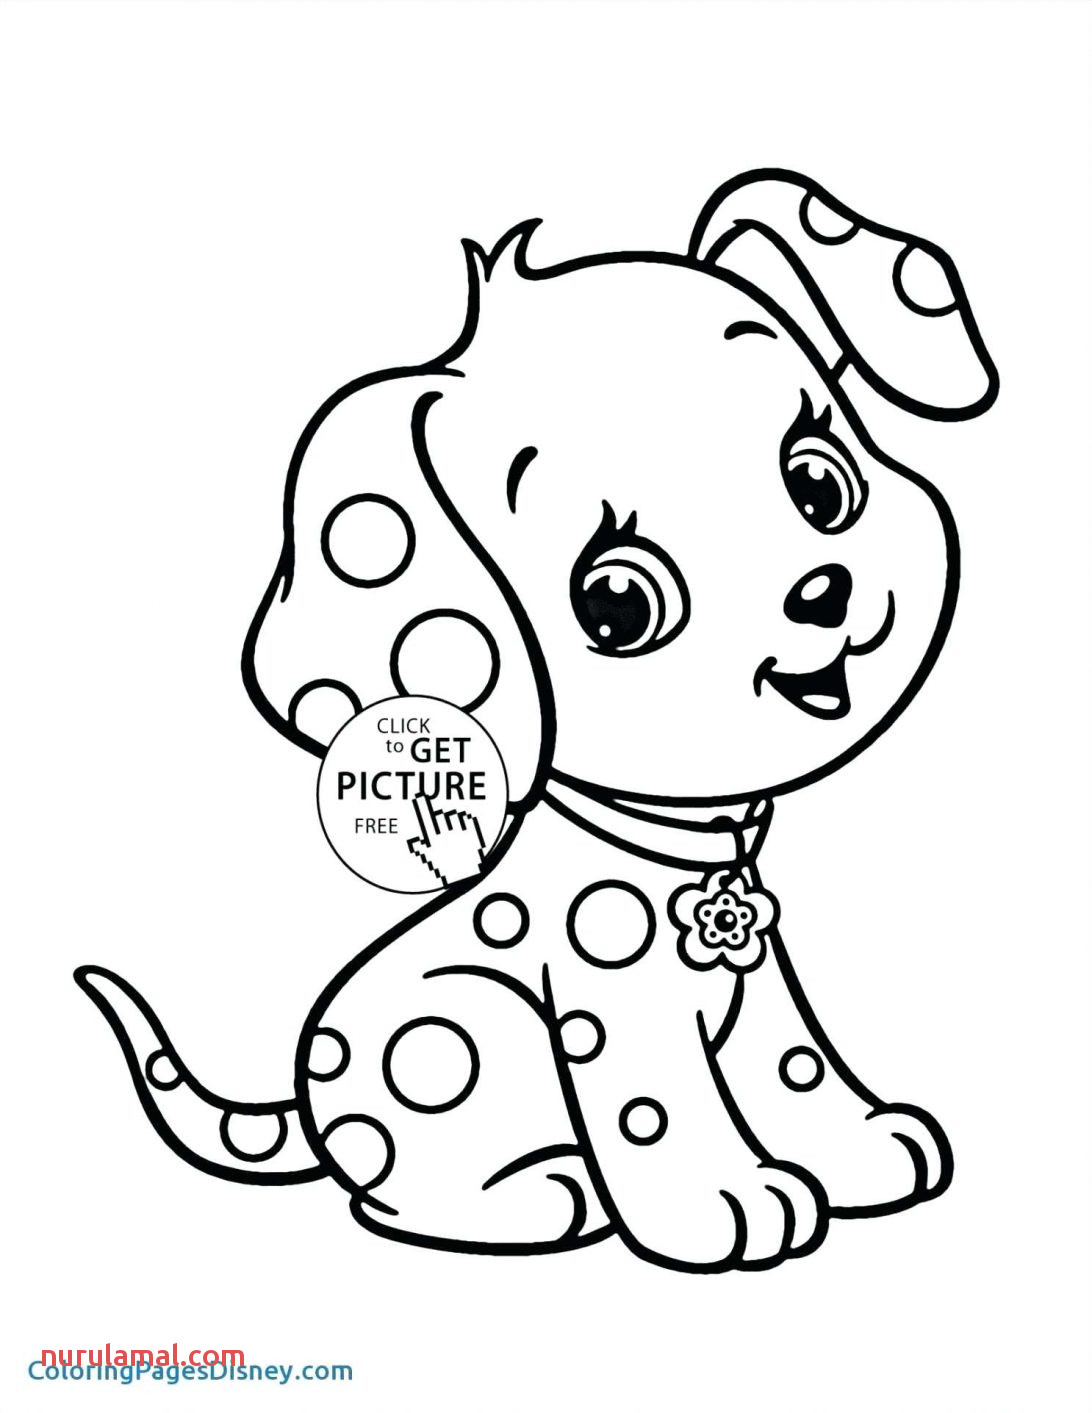 Dot Coloring Pages top Awesome Adornment Baliod Info Paint